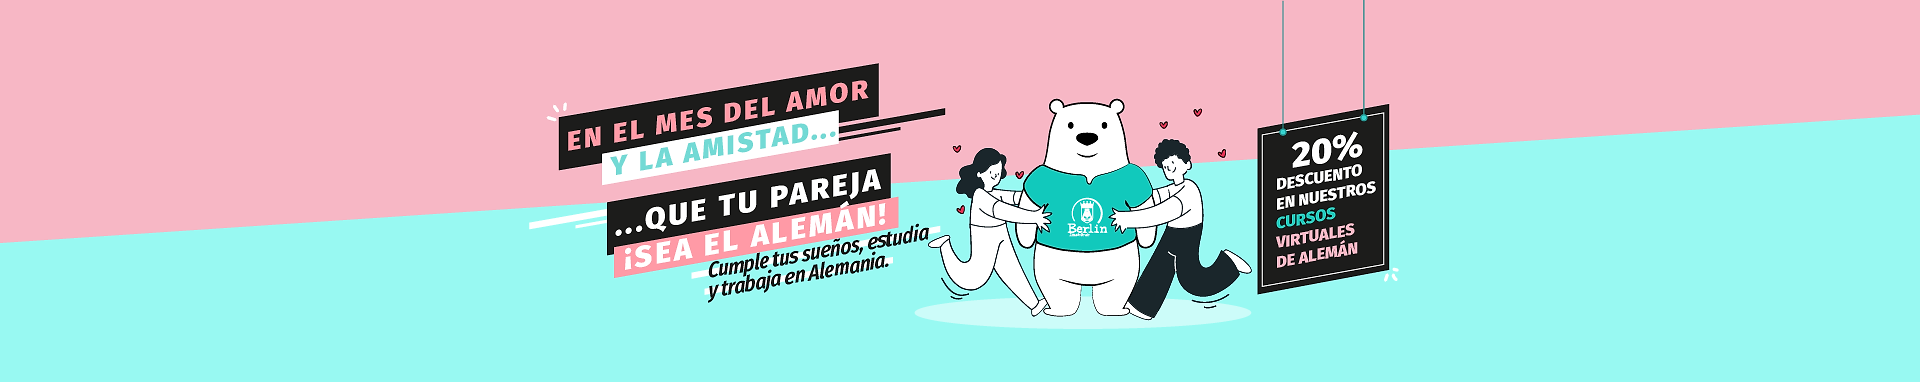 BANNER_SEPTIEMBRE.png